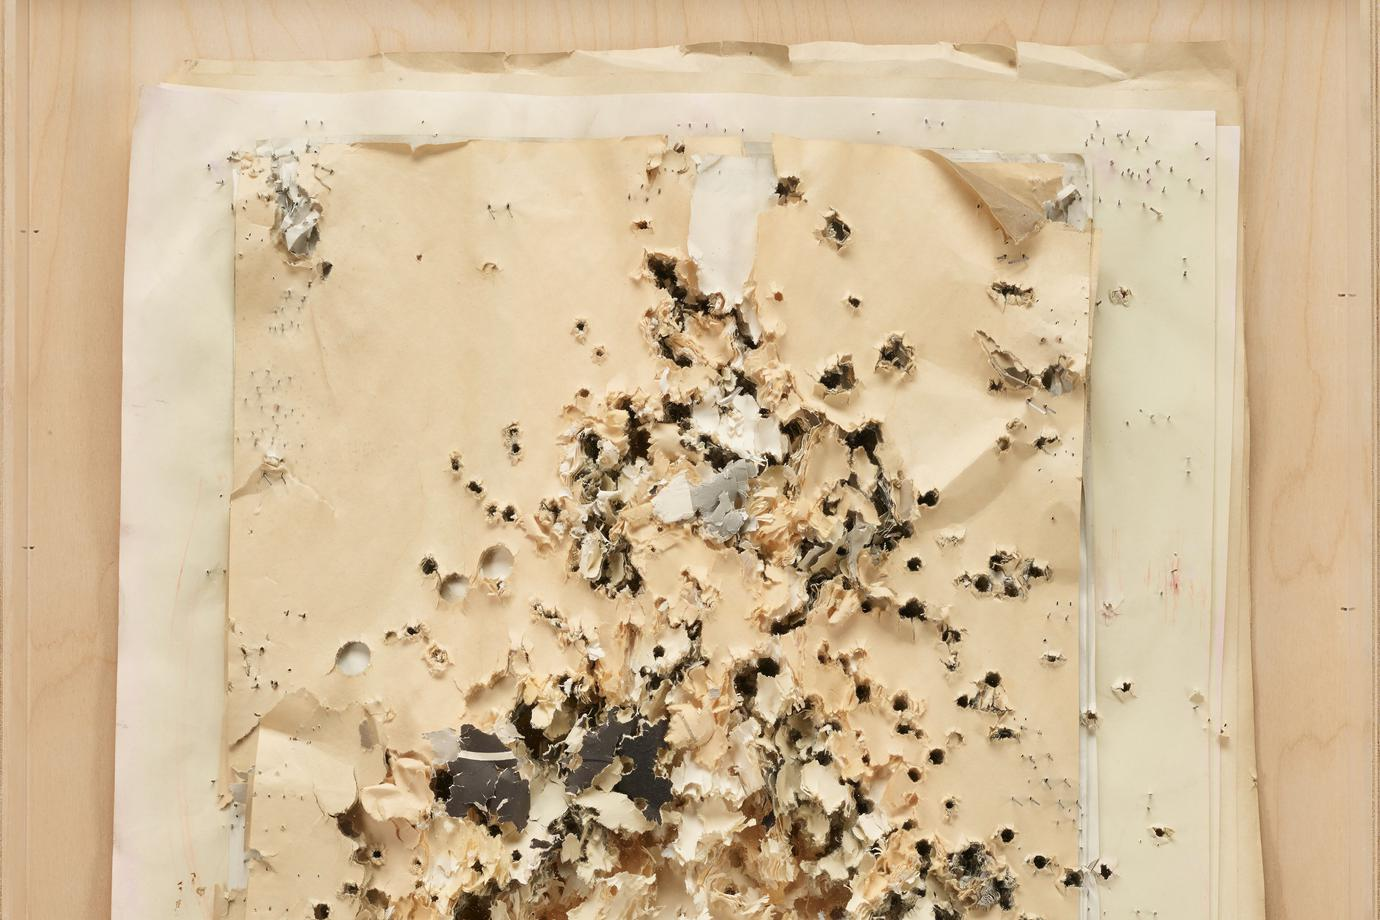 layers of backs of rectangular paper targets of different sizes shot through with bullet holes, with staples sticking out of edges; black and grey on reverse of paper; in plywood shadow box with Plexi cover